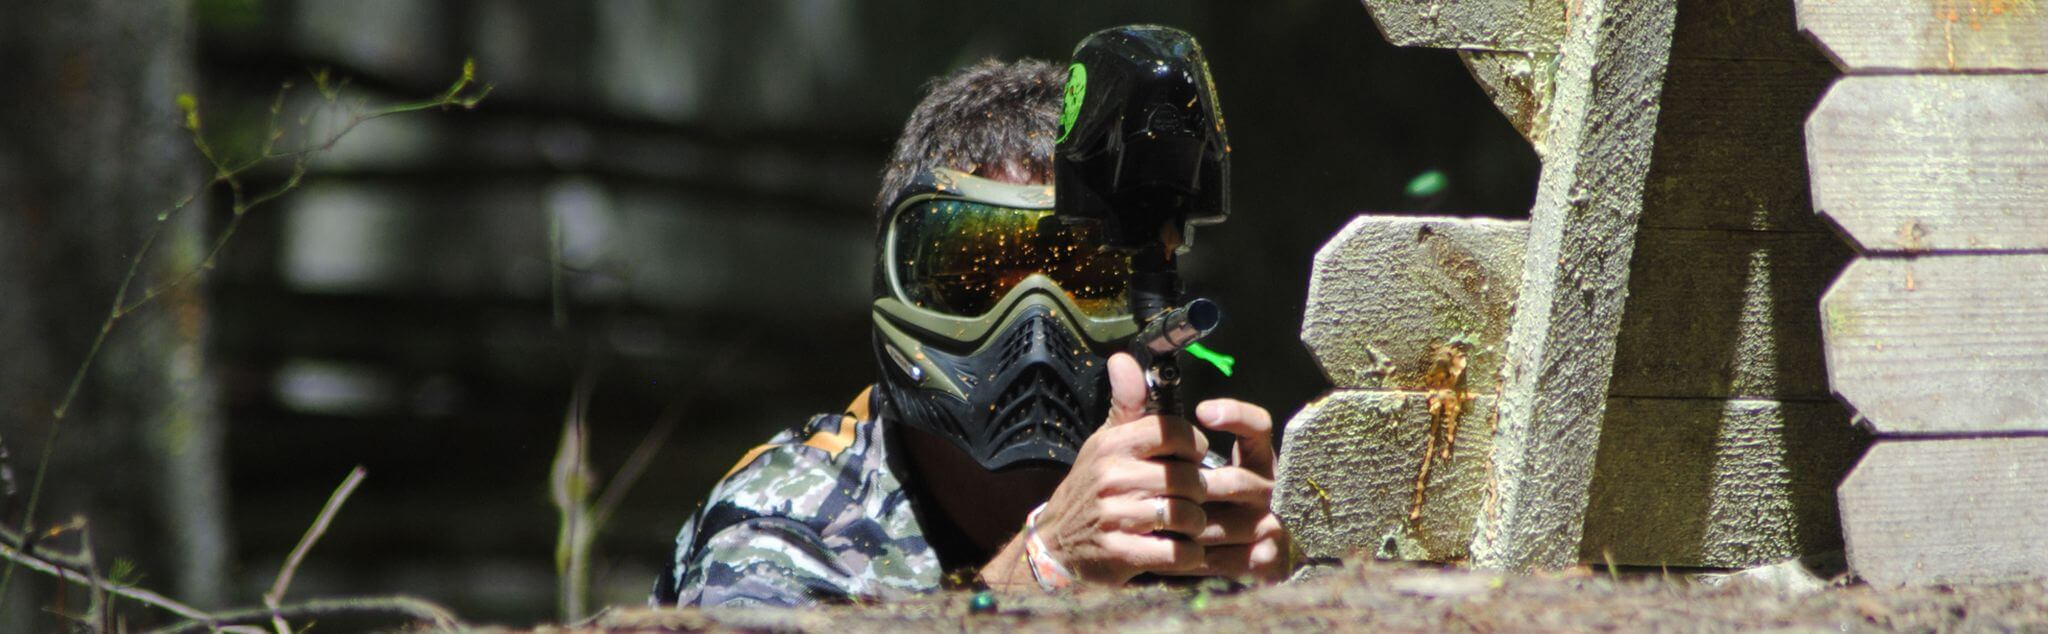 Paintball in Cabezon De Liebana